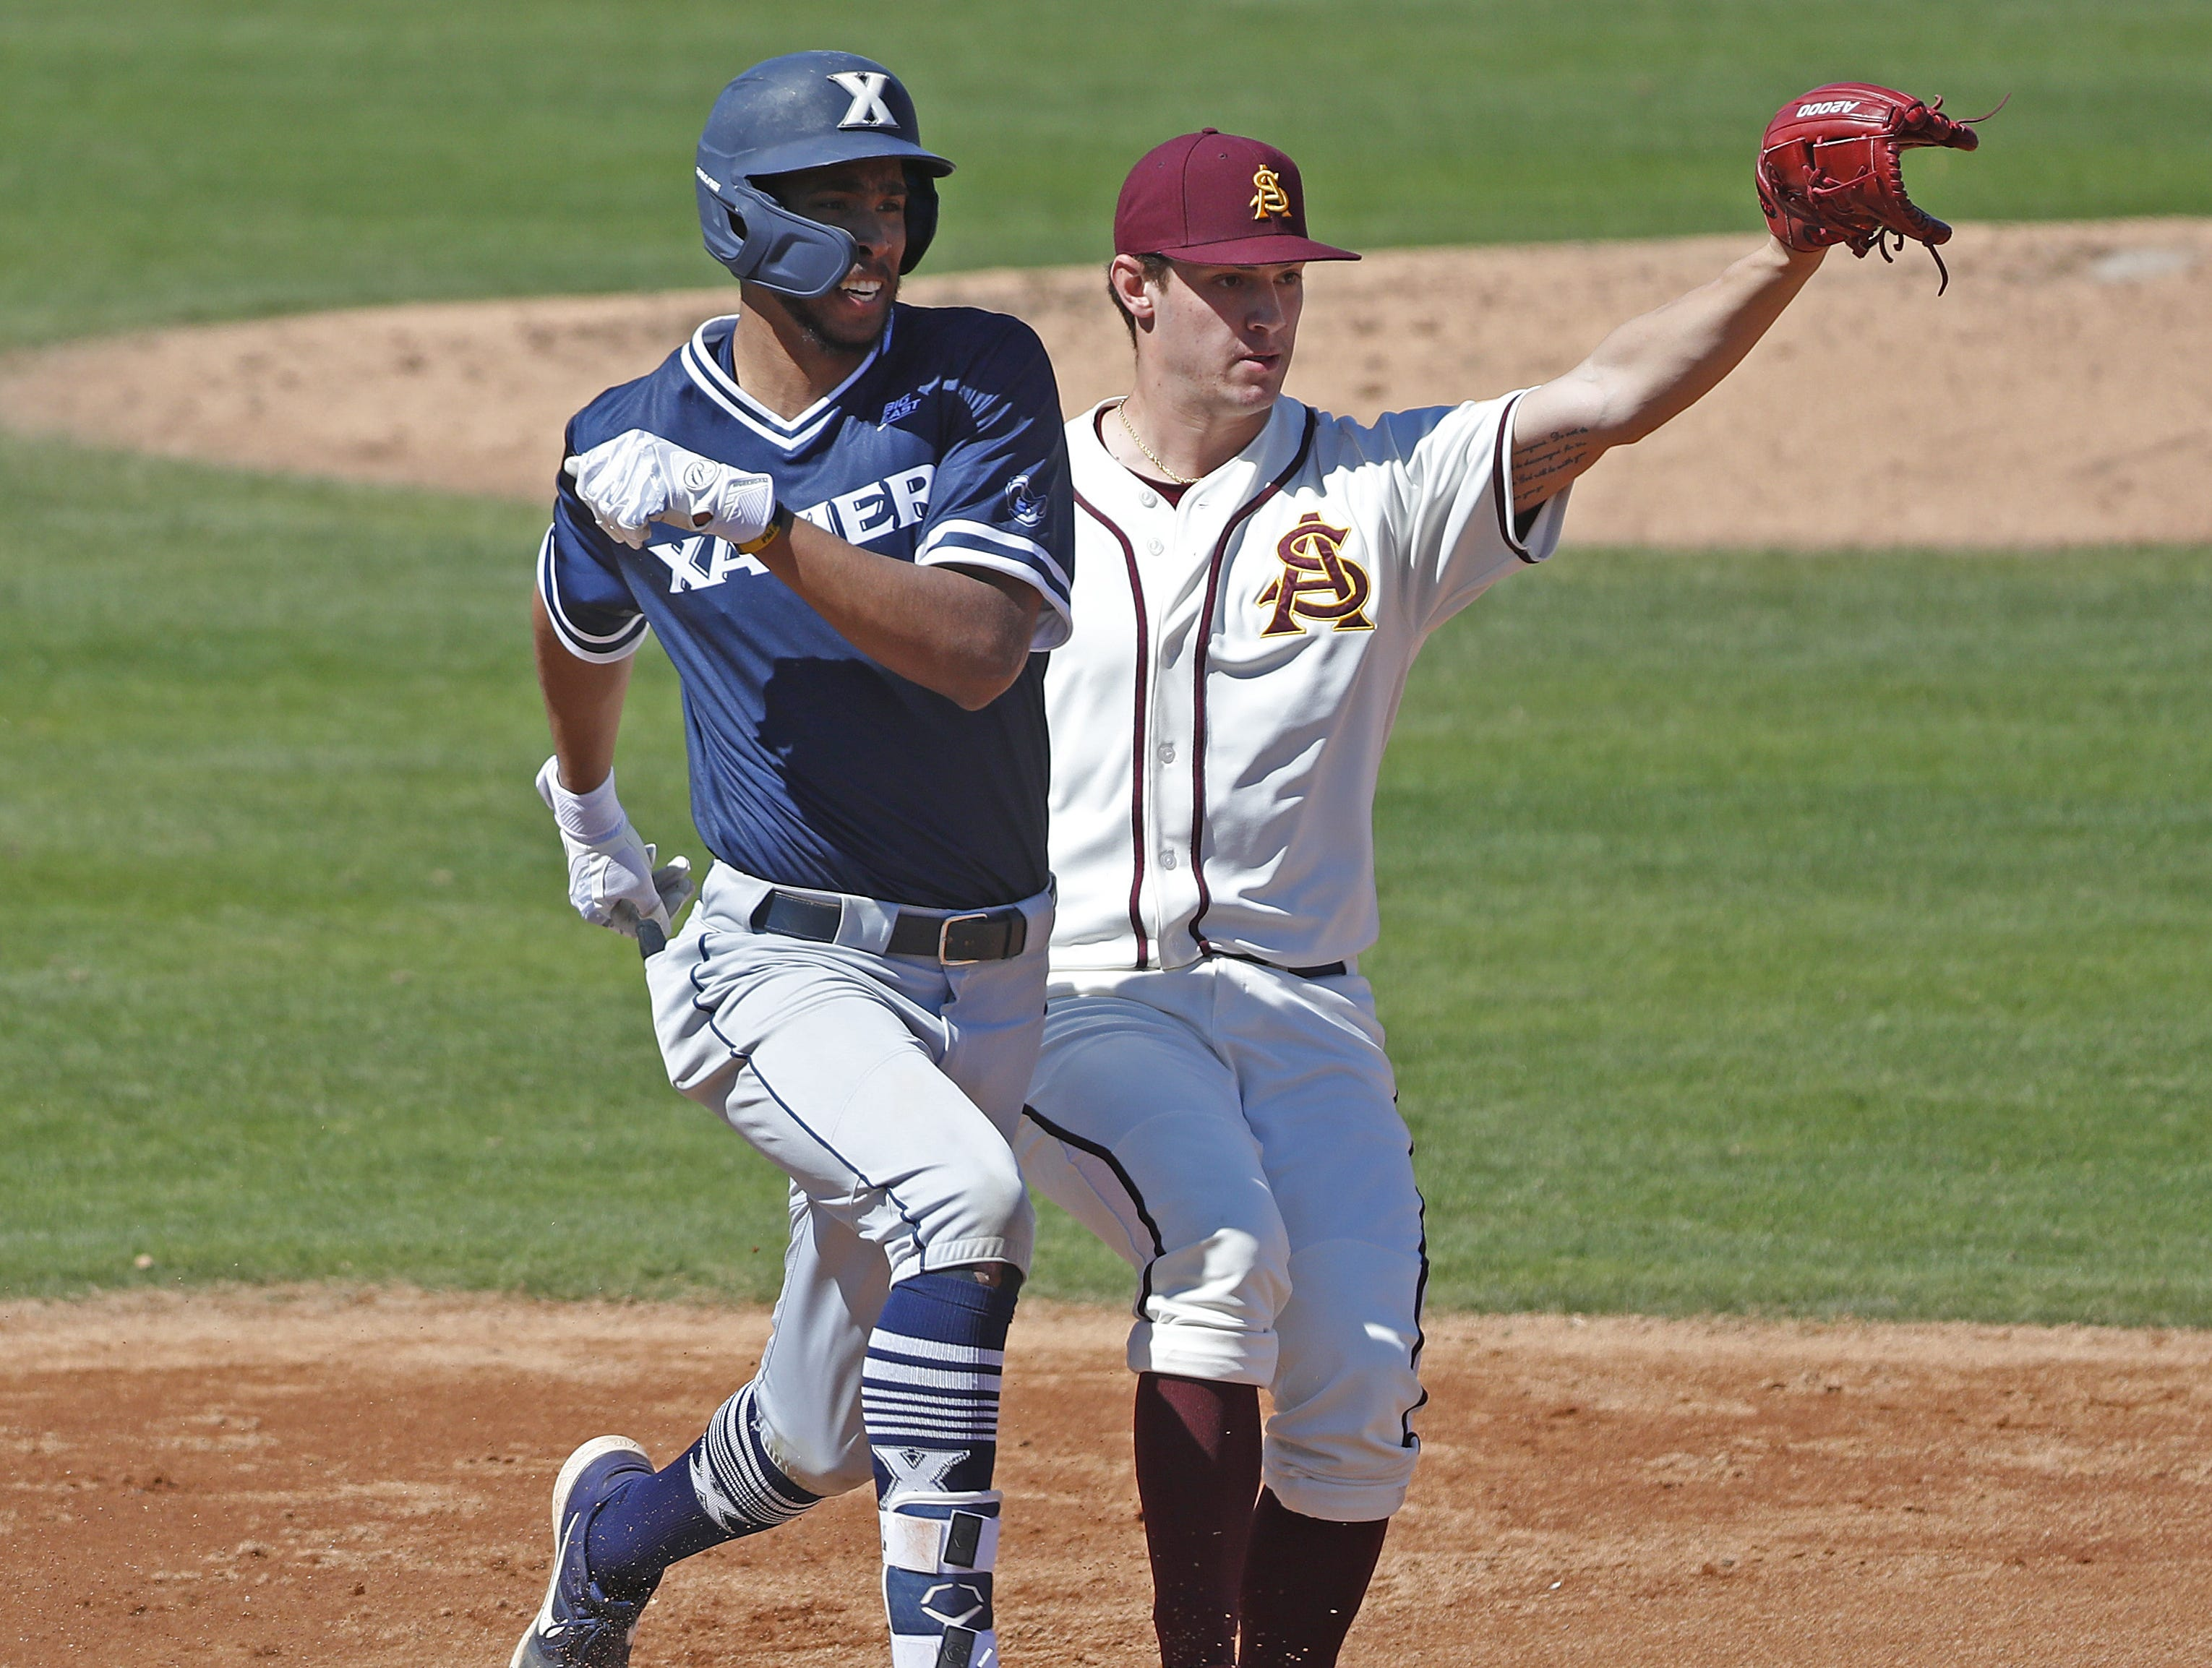 ASU's RJ Dabovich (11) catches the ball for a force out on Xavier's Allbry Major (34) during a game against Xavier at Phoenix Municipal Stadium in Phoenix, Ariz. on March 10, 2019.